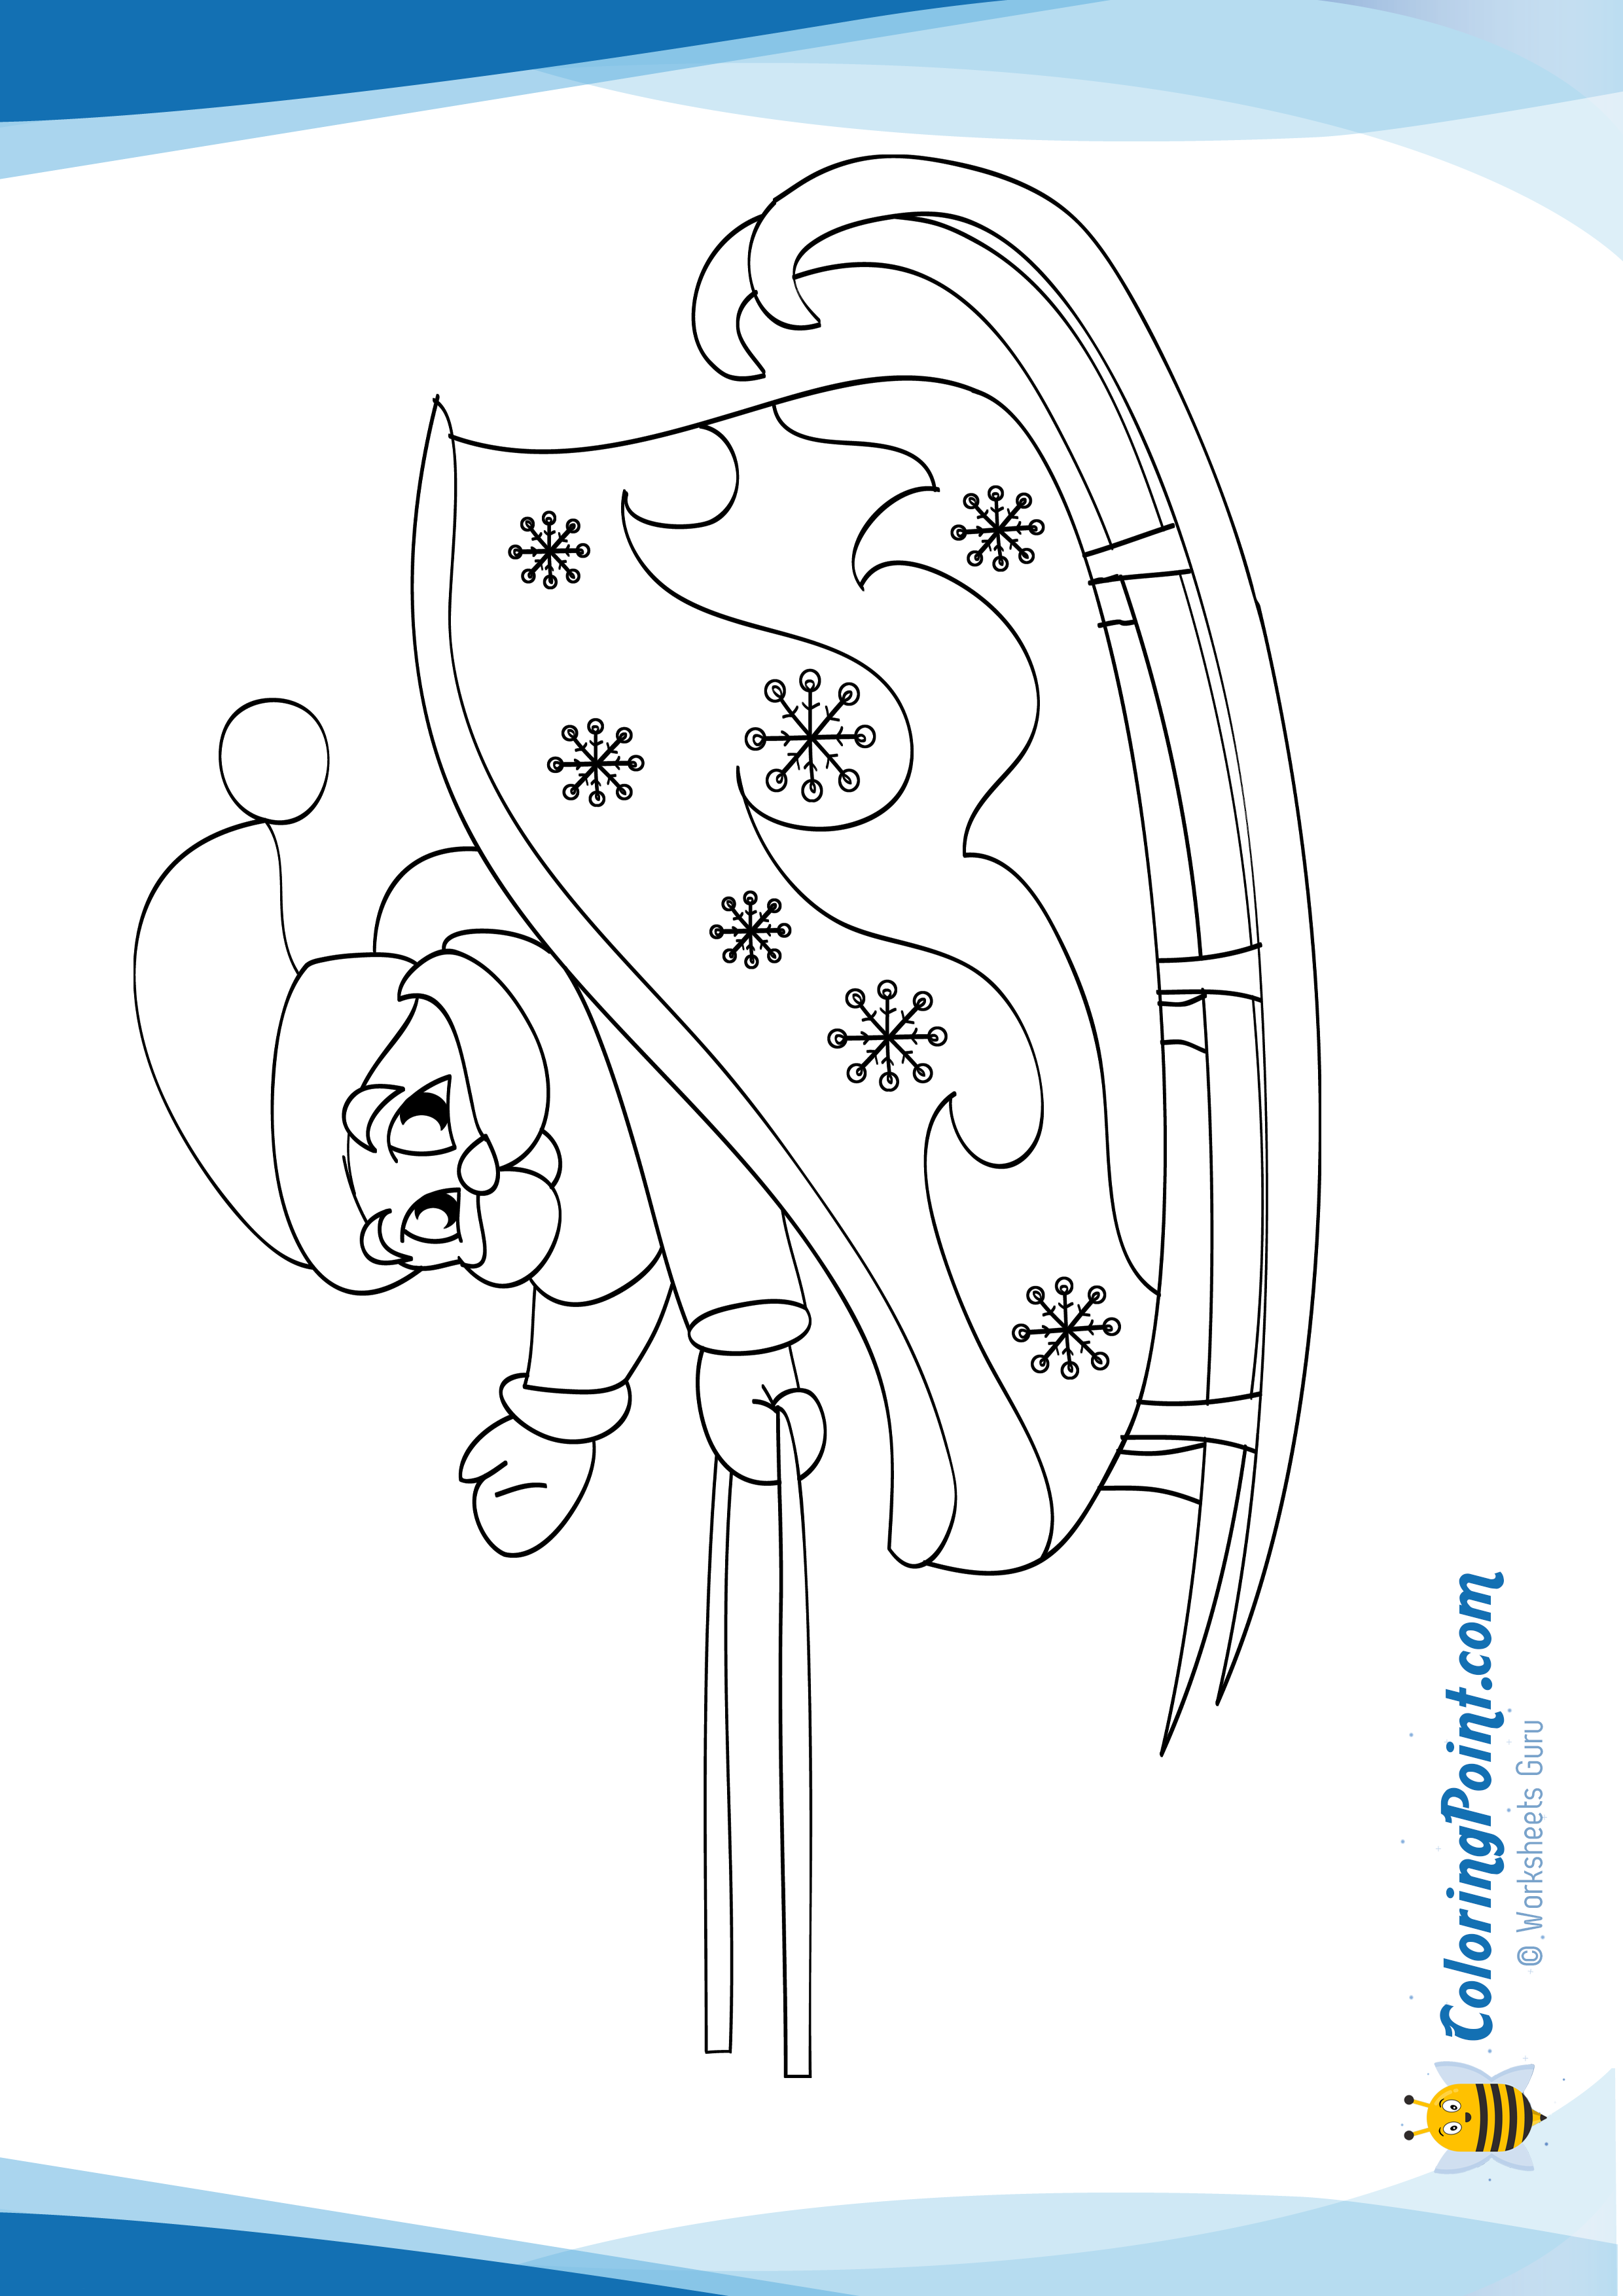 Lego Santa Claus Coloring Pages With On His Sleigh Page There Is A New